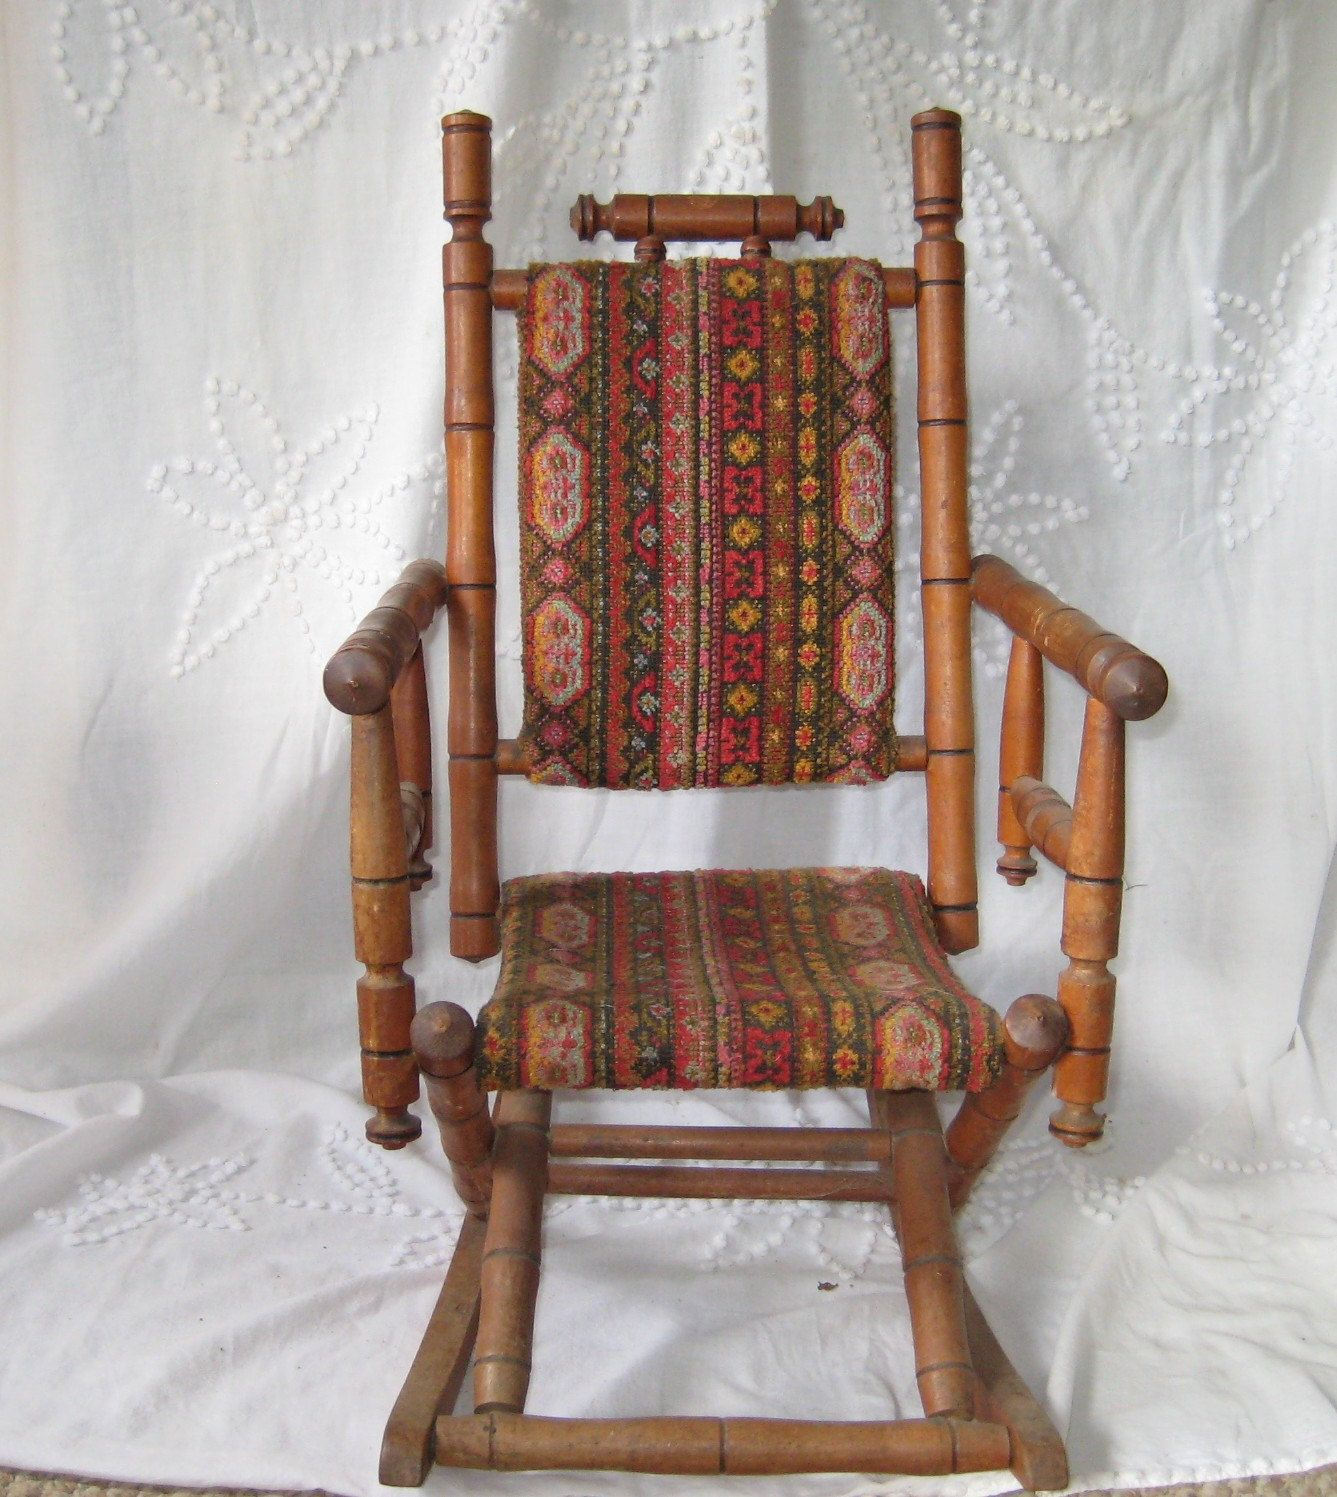 Antique Rocking Chair Childs rocking chair by EndlesslyVintage - Antique Rocking Chair Childs Rocking Chair By EndlesslyVintage I